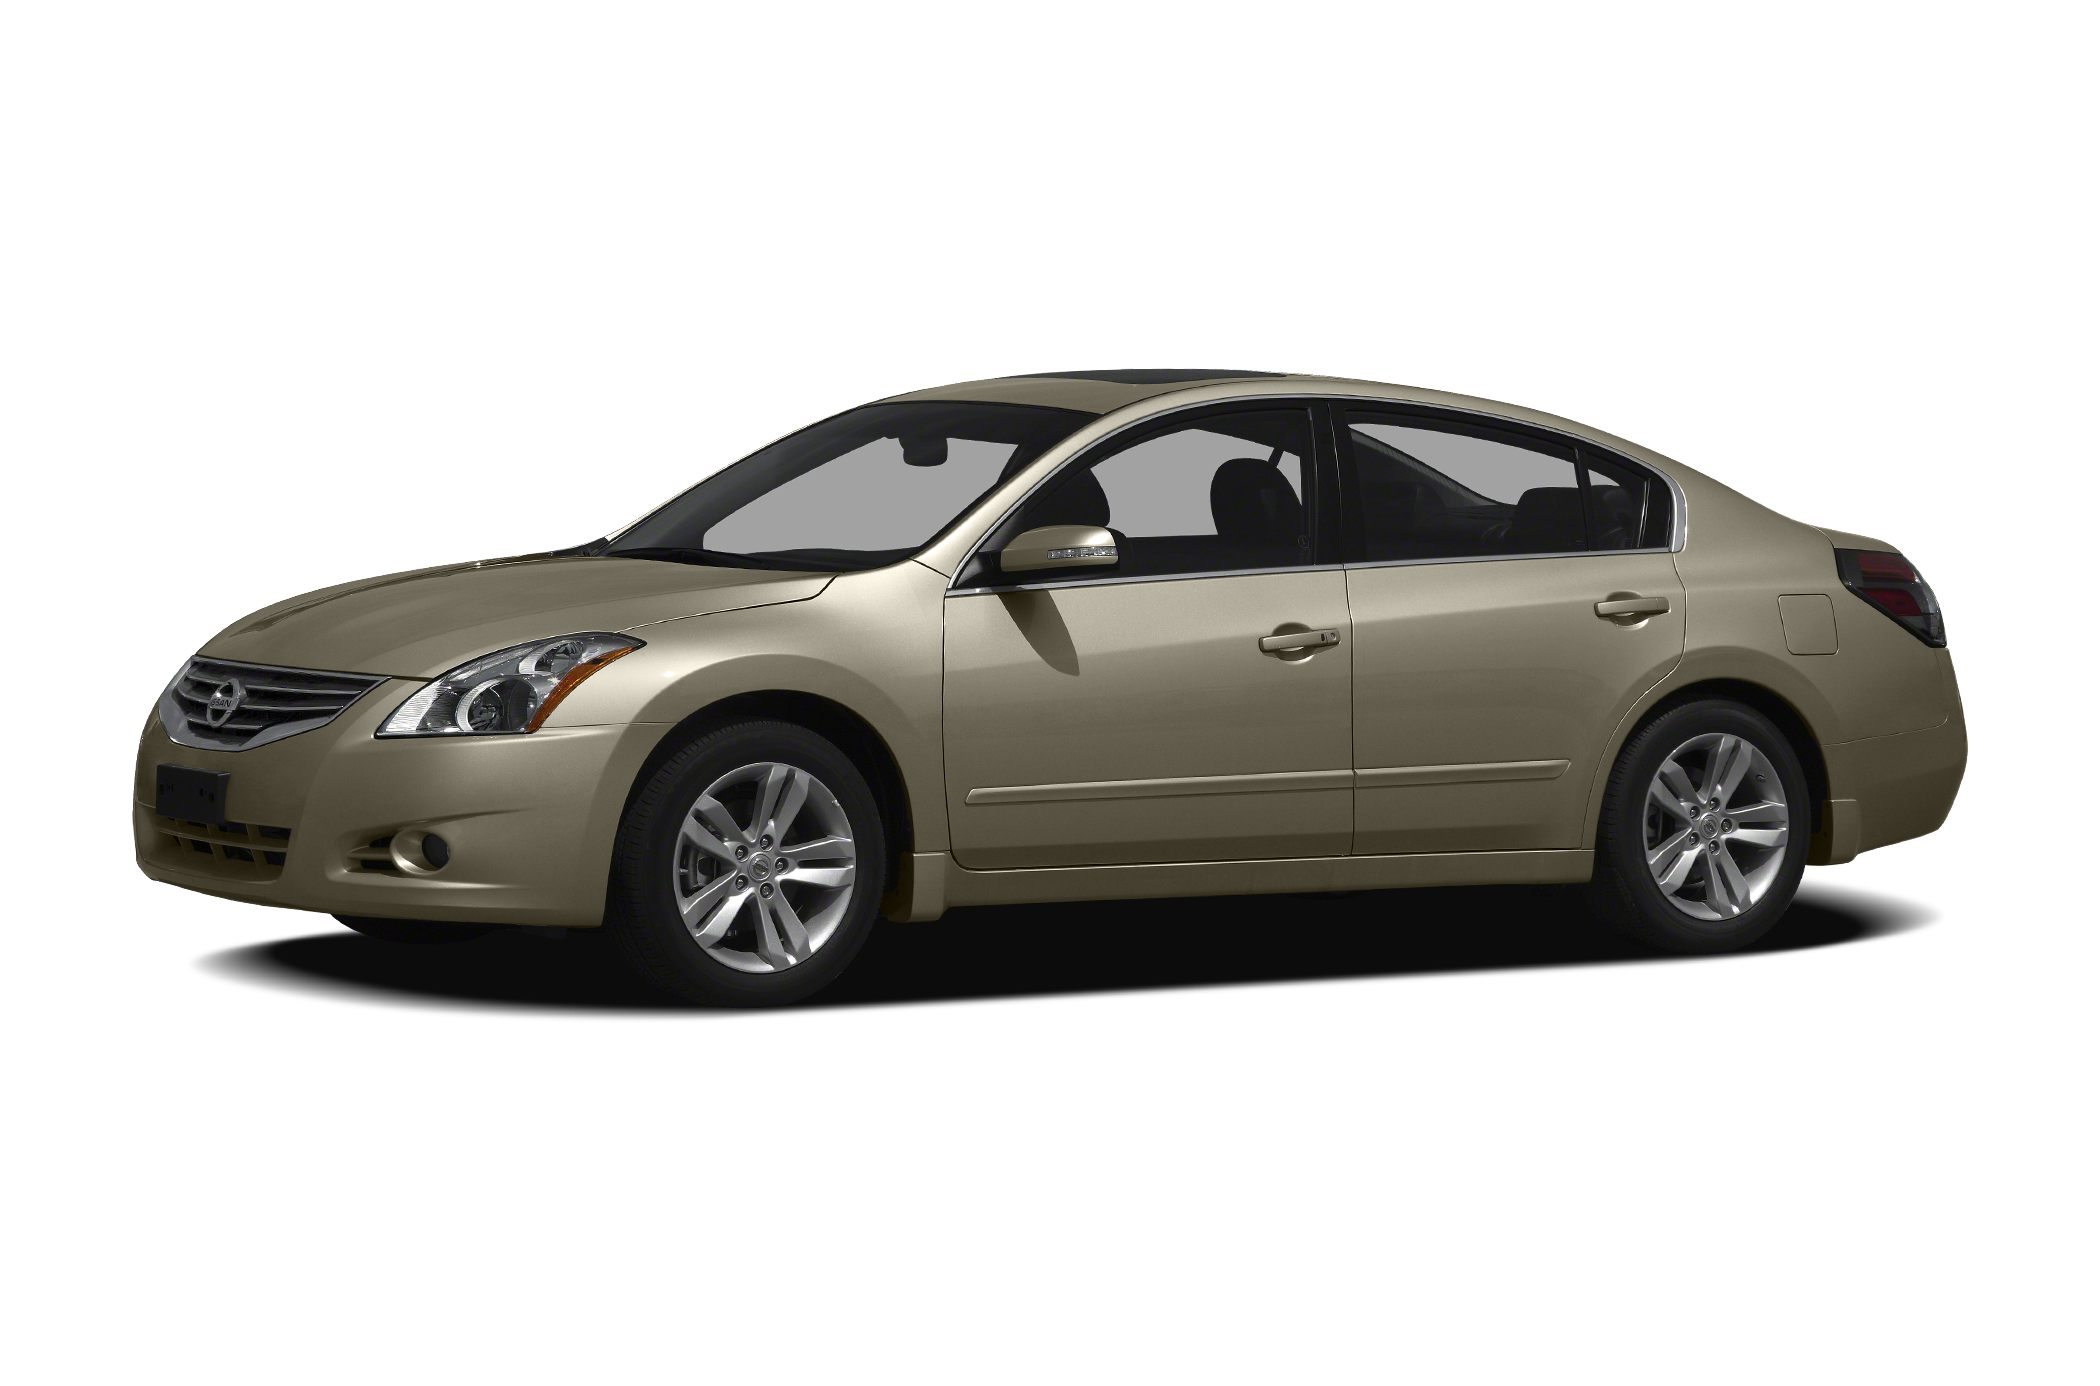 2011 Nissan Altima 3.5 SR Sedan for sale in Conroe for $12,488 with 116,686 miles